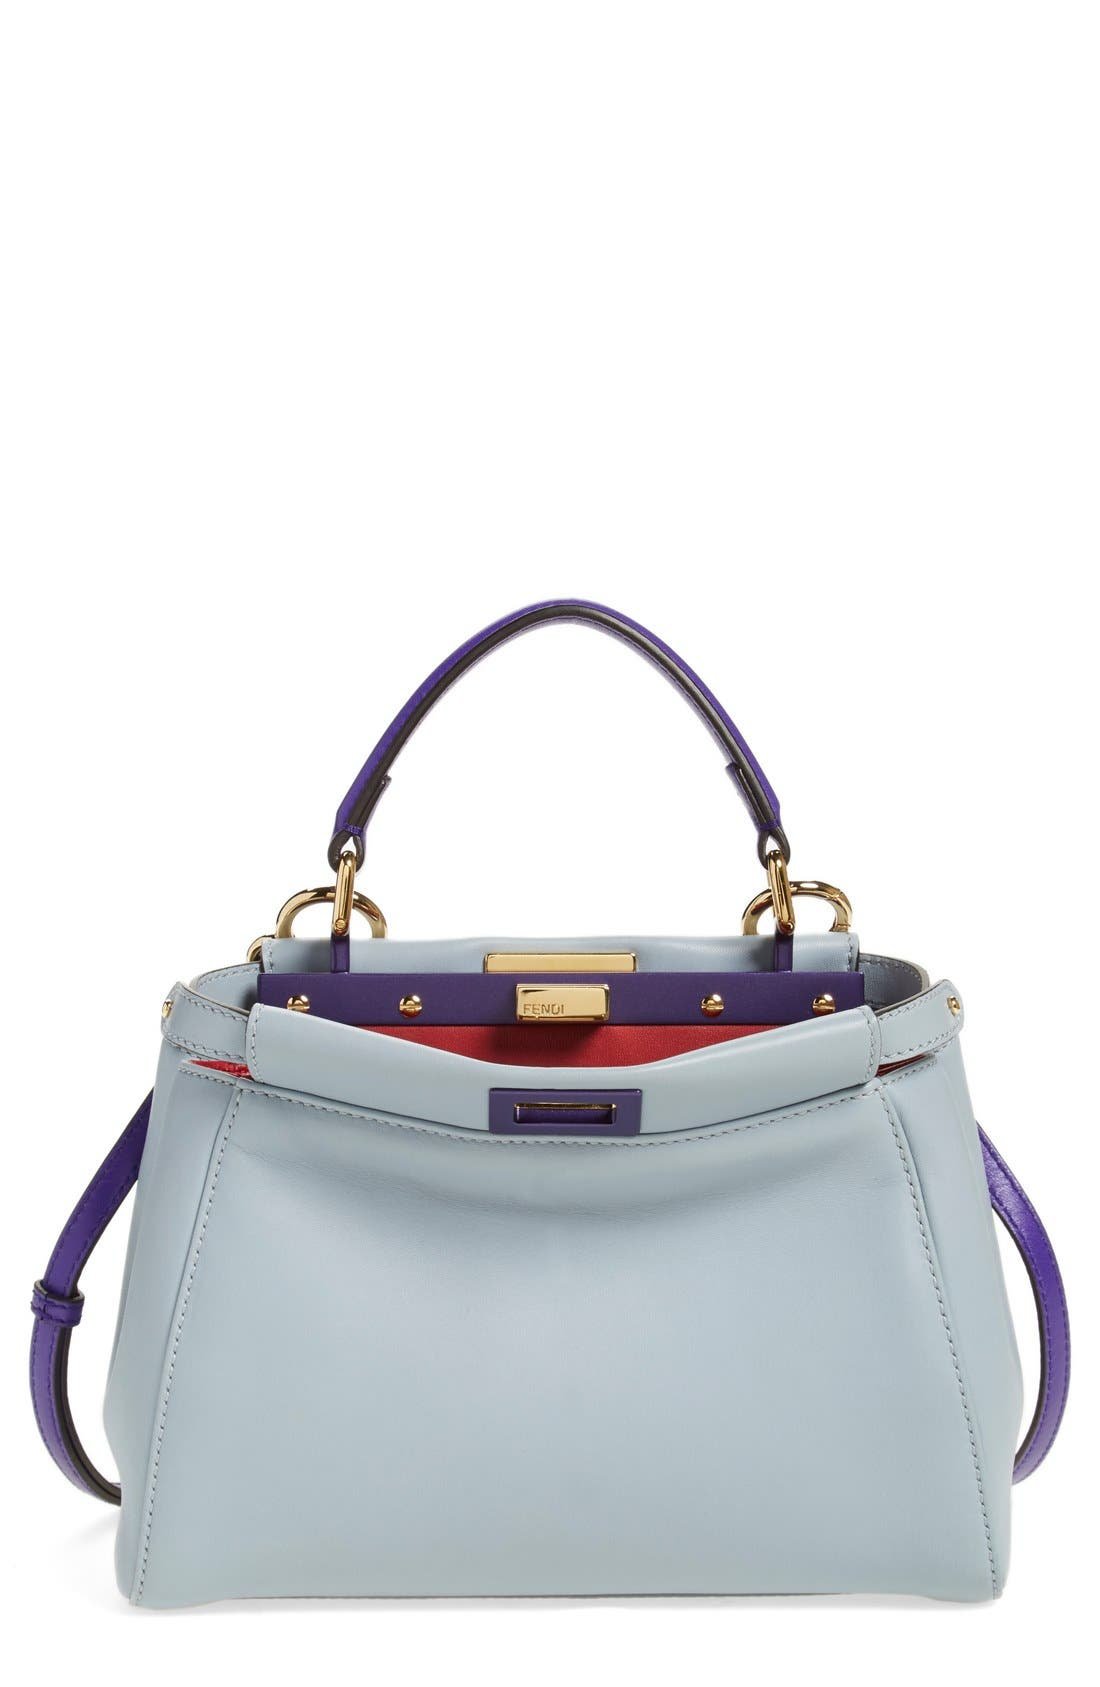 'Mini Peekaboo' Colorblock Leather Bag,                             Alternate thumbnail 2, color,                             Powder/Purple Ruby